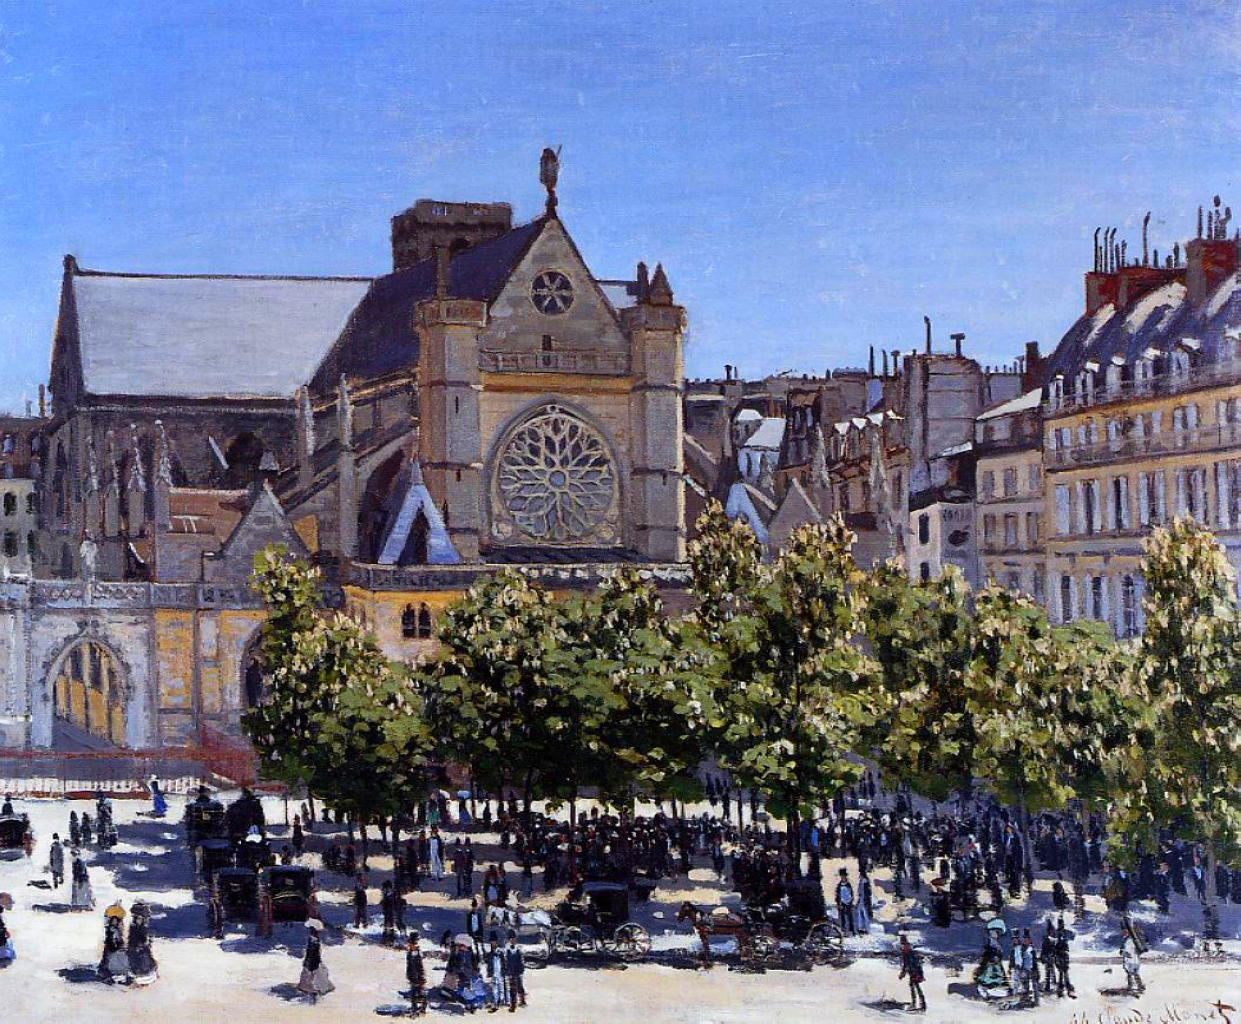 Claude Monet - Saint Germain l'Auxerrois 1867